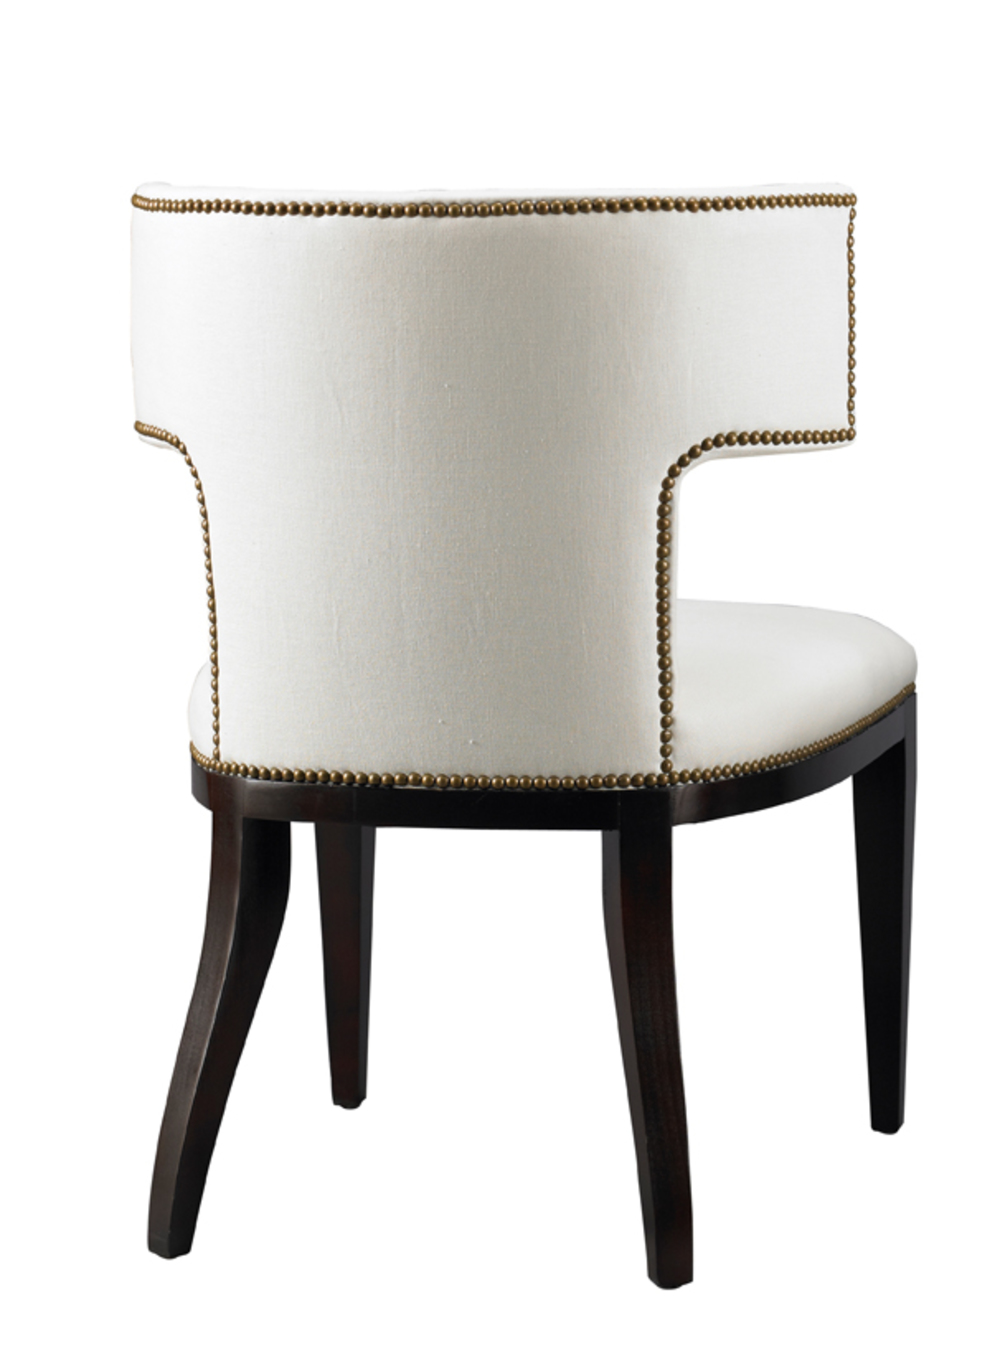 Mr. and Mrs. Howard by Sherrill Furniture - Klismos Armless Chair